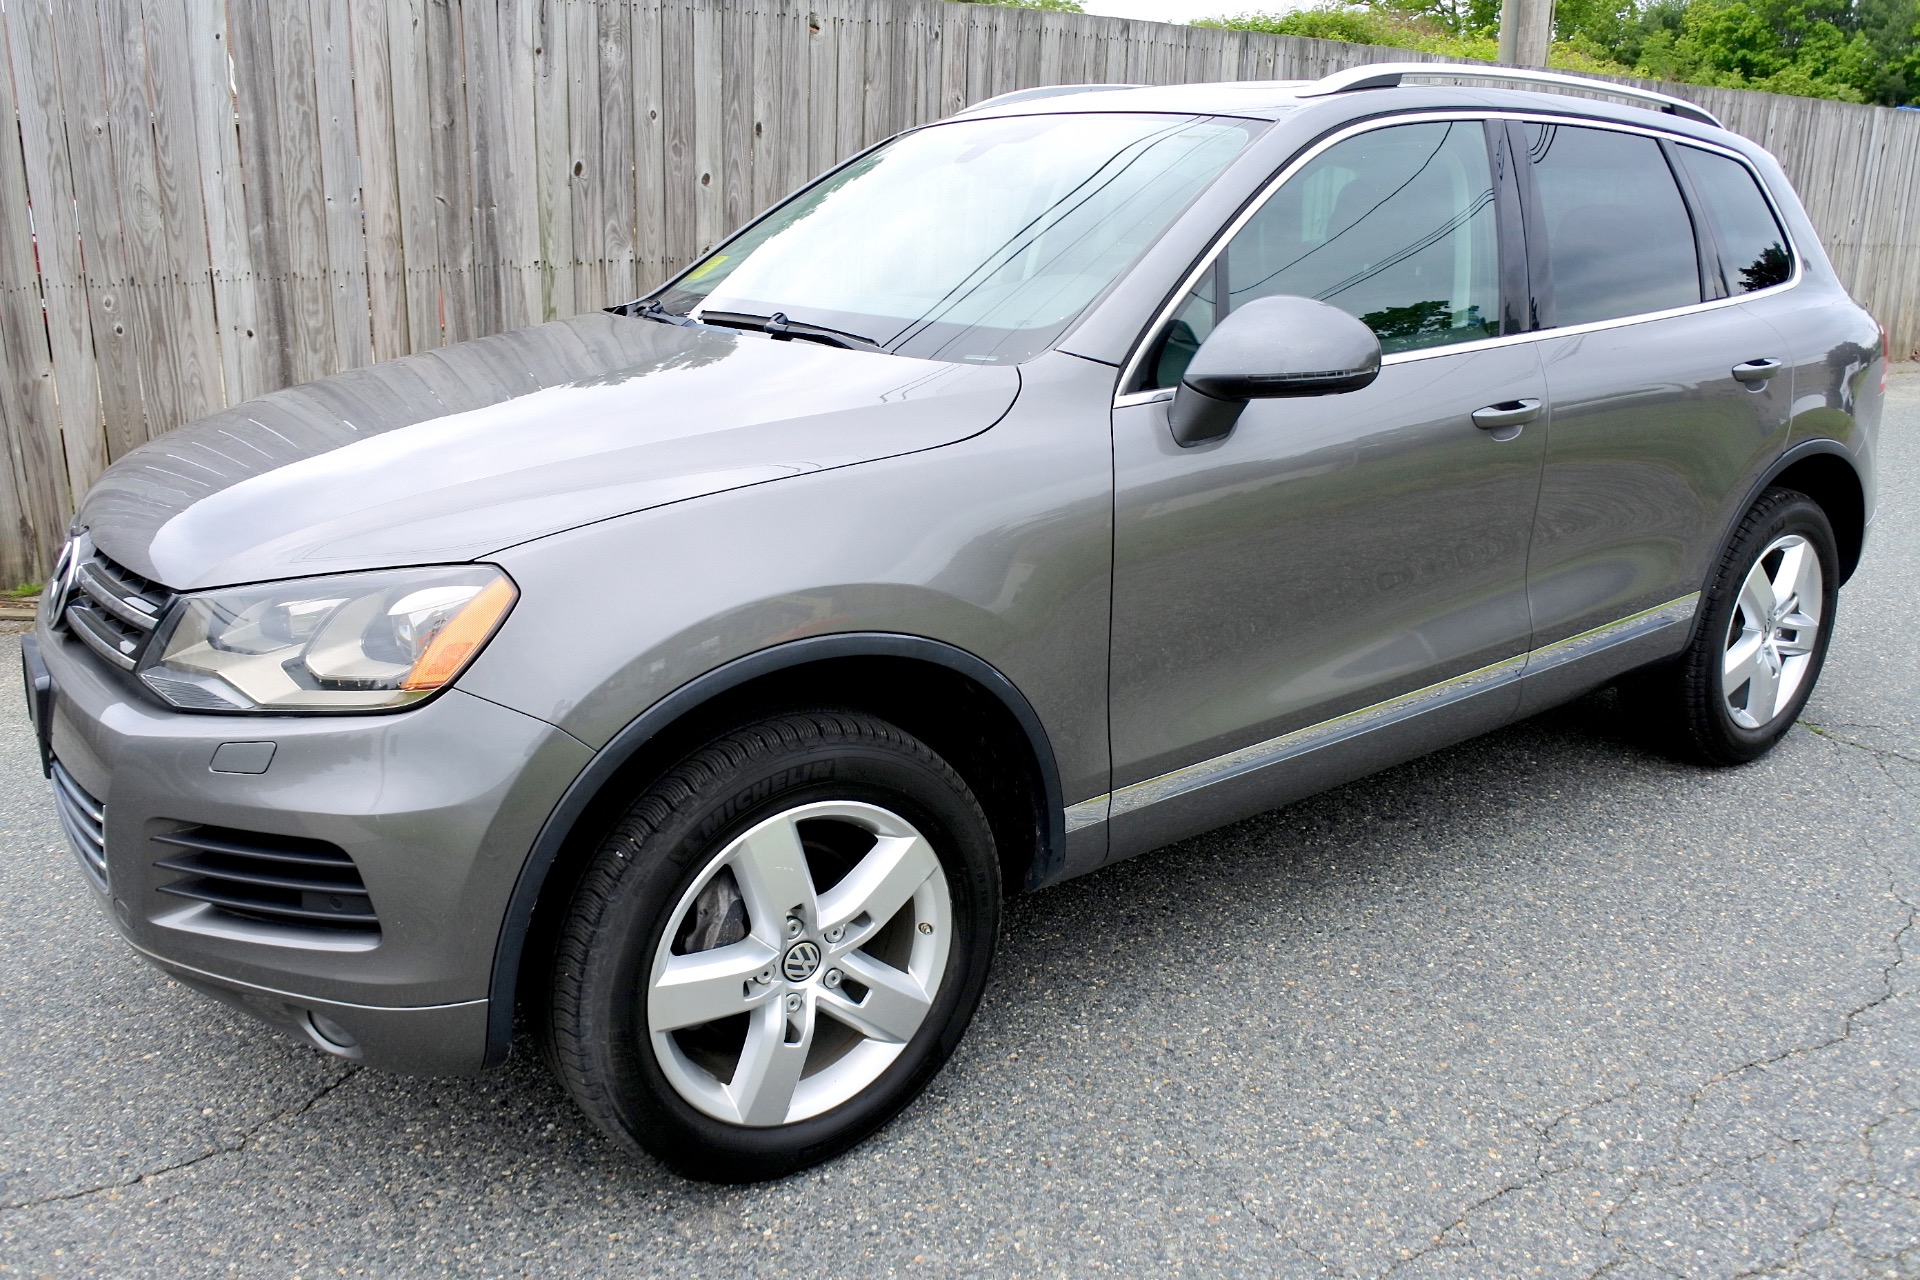 Used 2011 Volkswagen Touareg Tdi Lux For Sale 13 800 Metro West Motorcars Llc Stock 006889